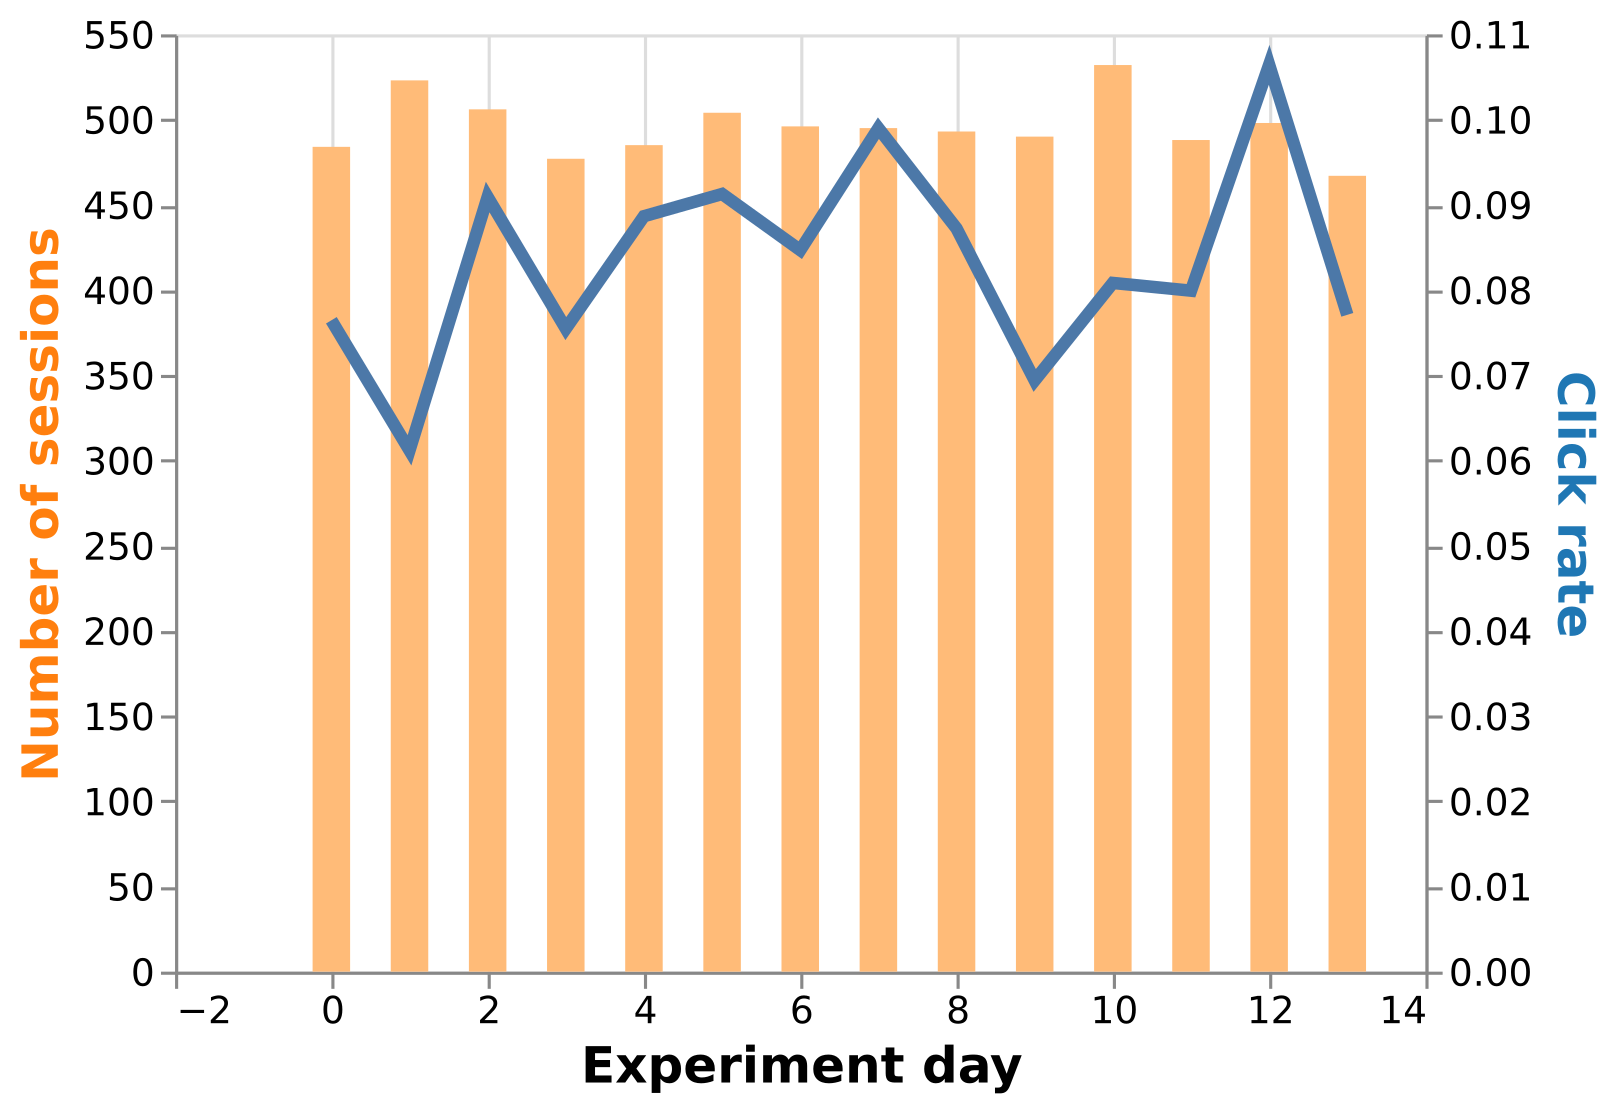 Plot of the observed data